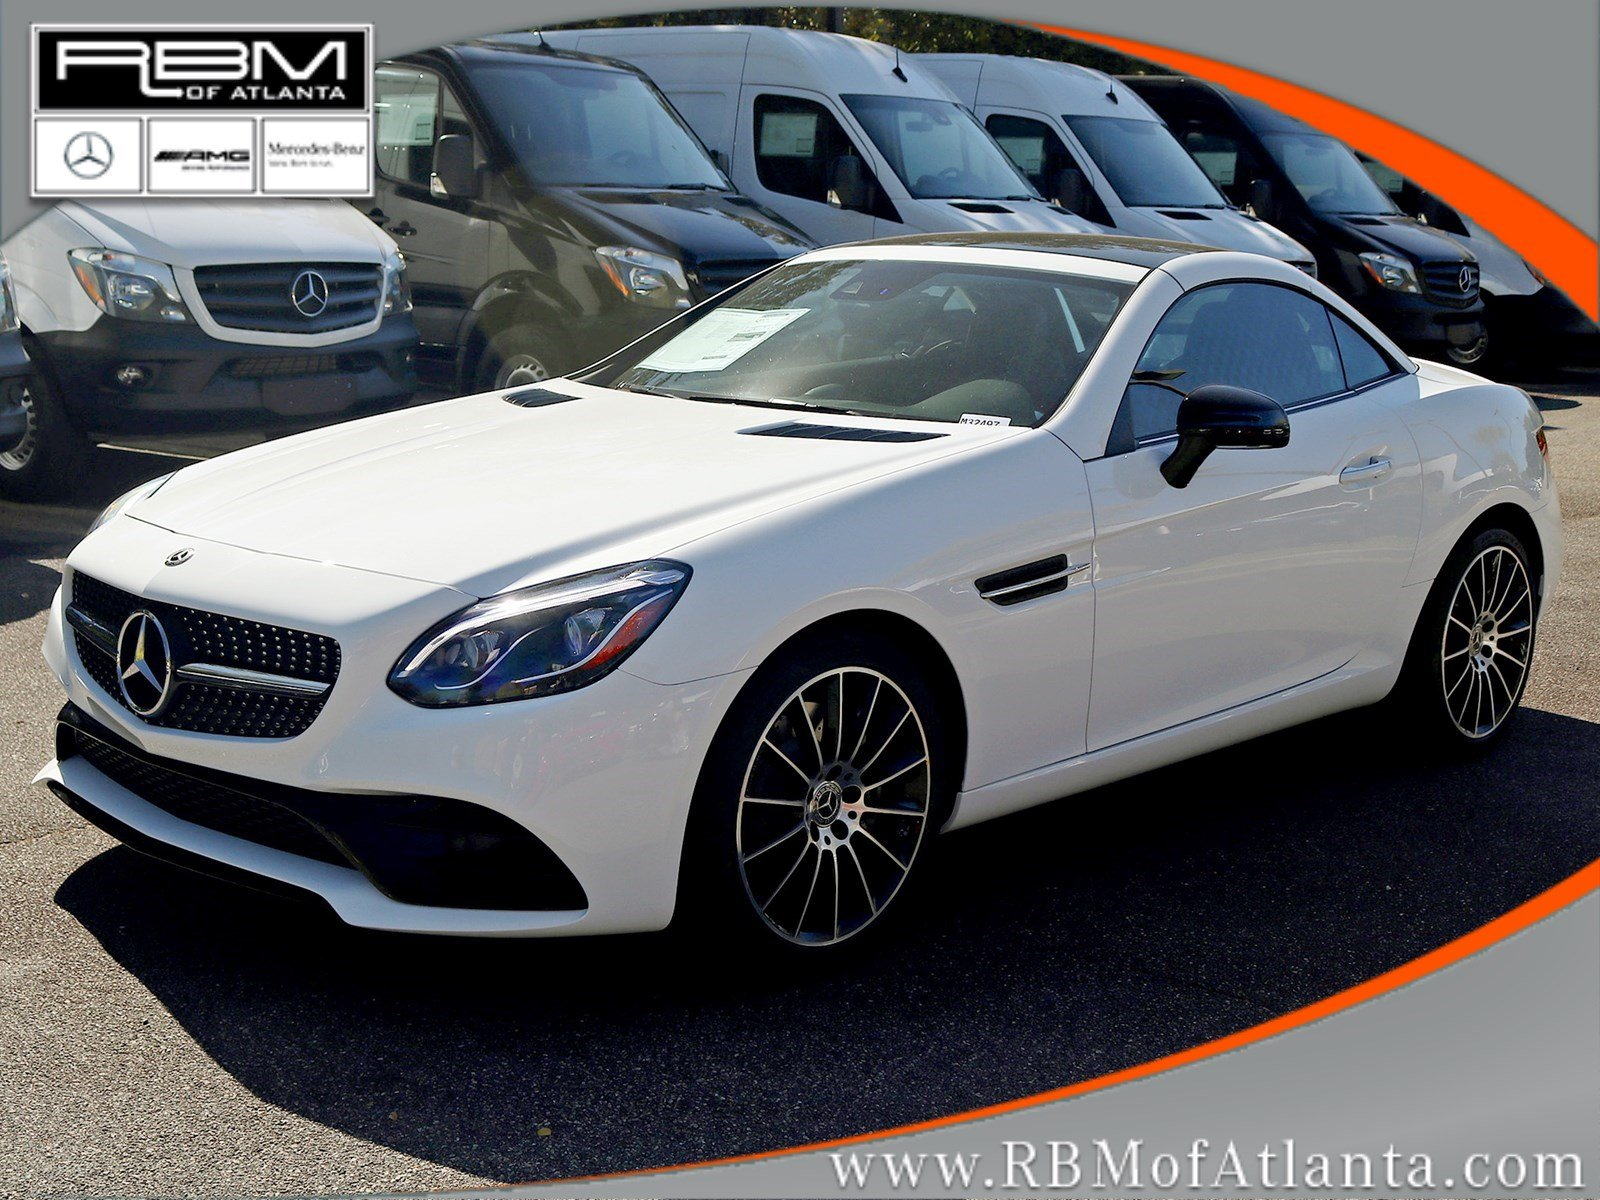 New 2018 mercedes benz slc slc 300 roadster convertible in for Slc mercedes benz